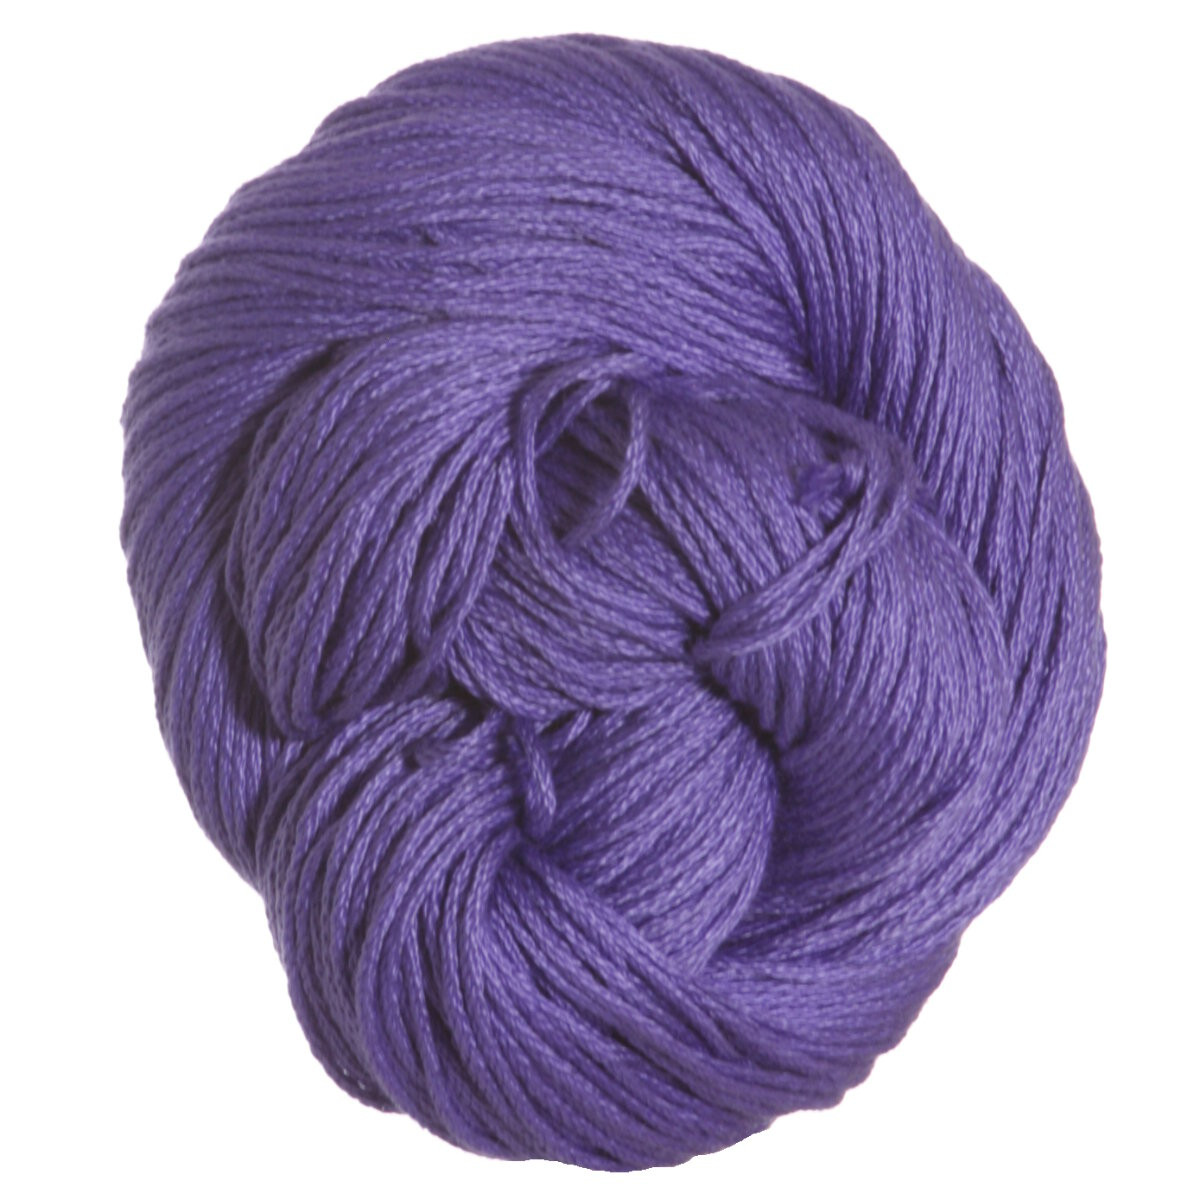 Tahki Cotton Classic Beautiful Tahki Cotton Classic Yarn 3942 Dark Lavender at Jimmy Of Incredible 46 Pictures Tahki Cotton Classic